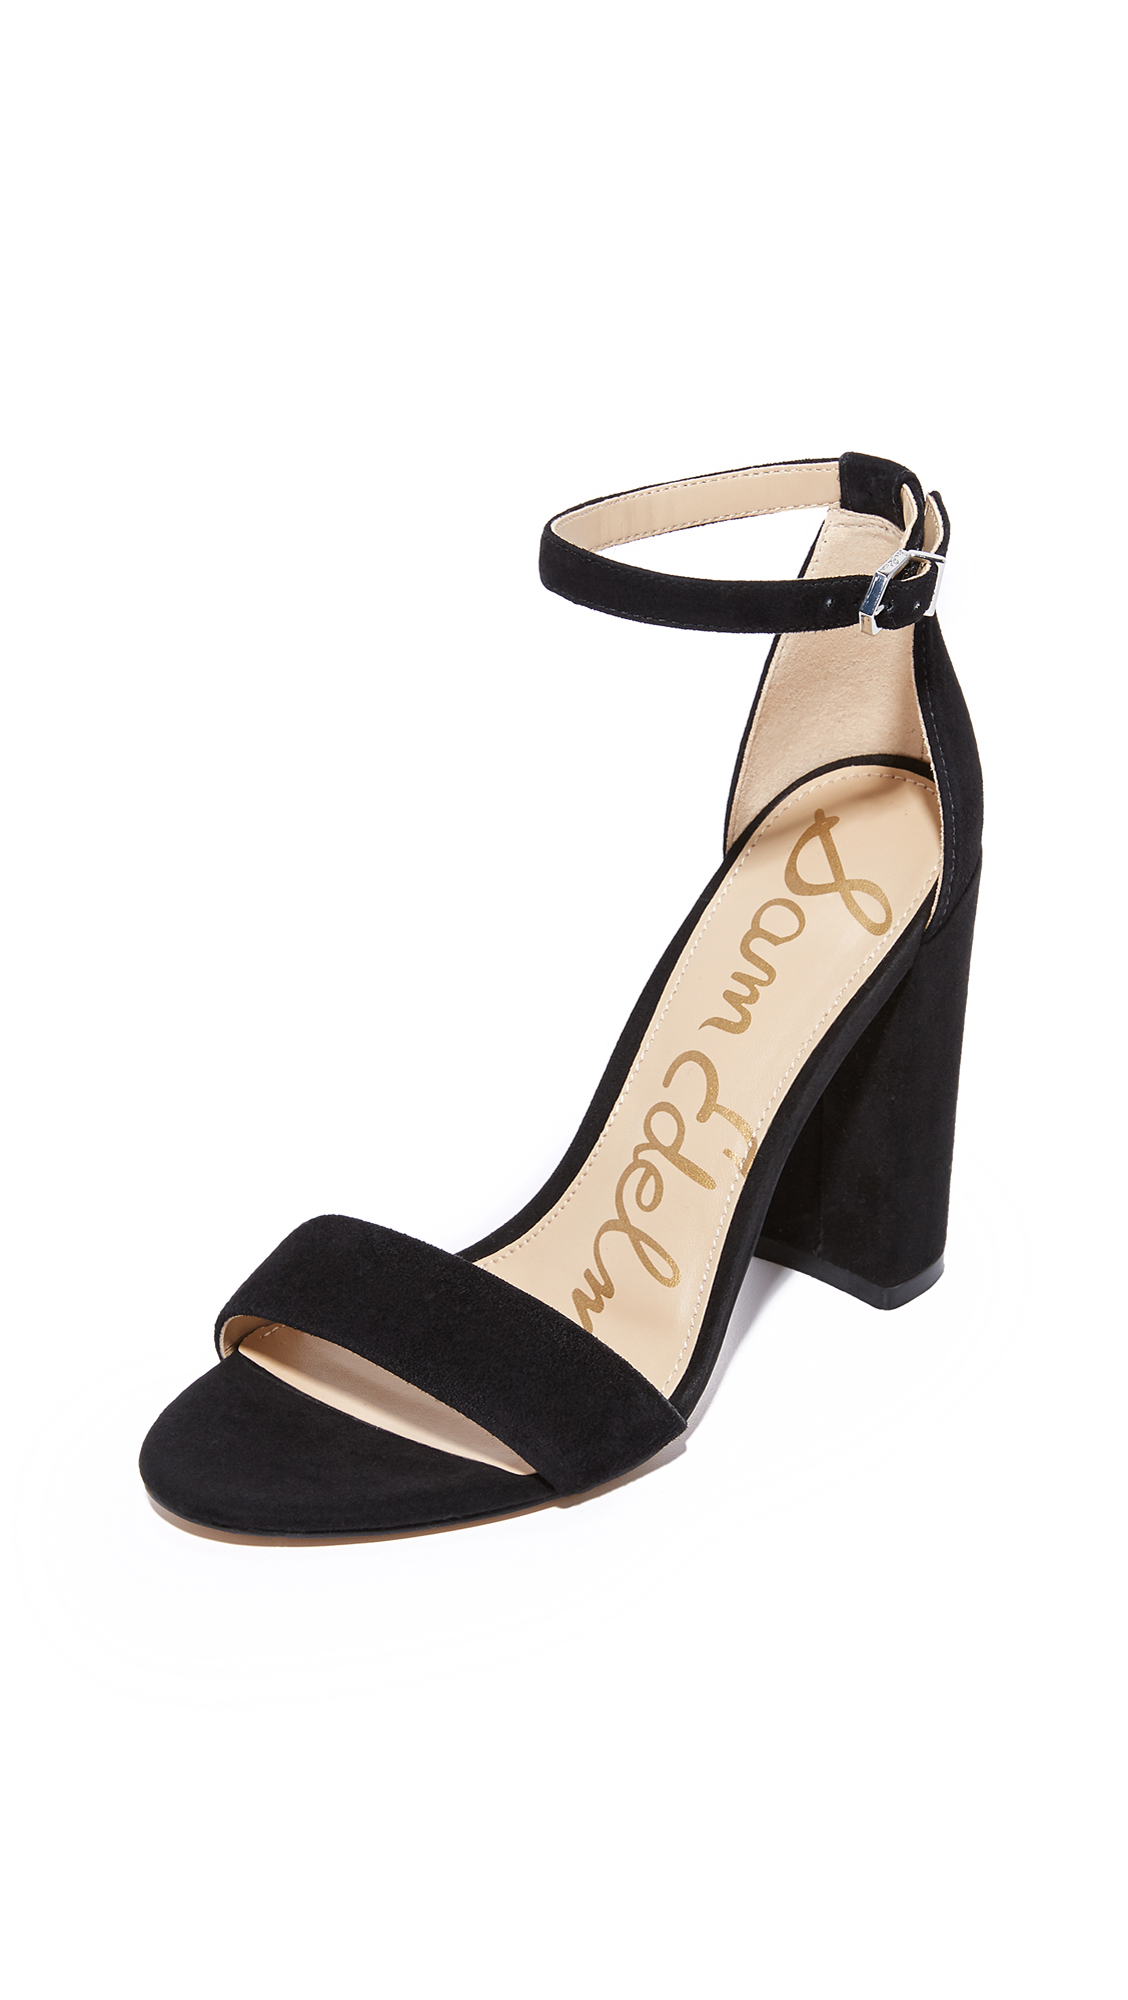 Sam Edelman Yaro Suede Sandals - Black